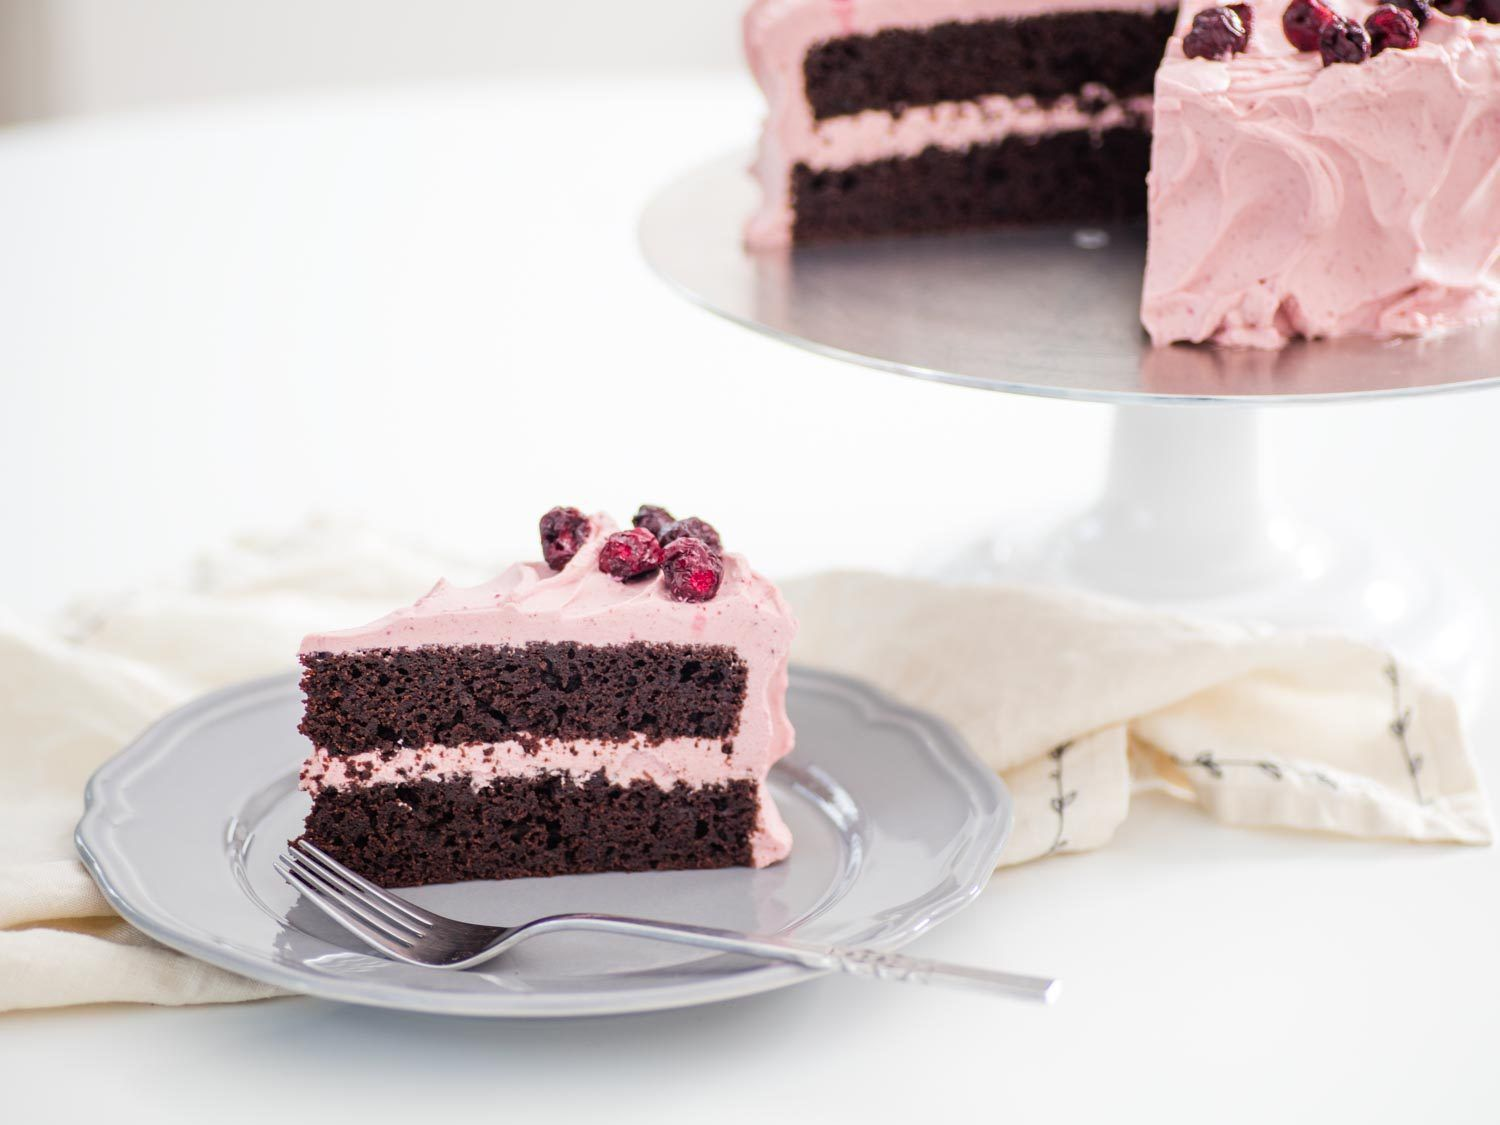 A slice of chocolate cherry layer cake on a plate, next to the rest of the cake on a cake stand